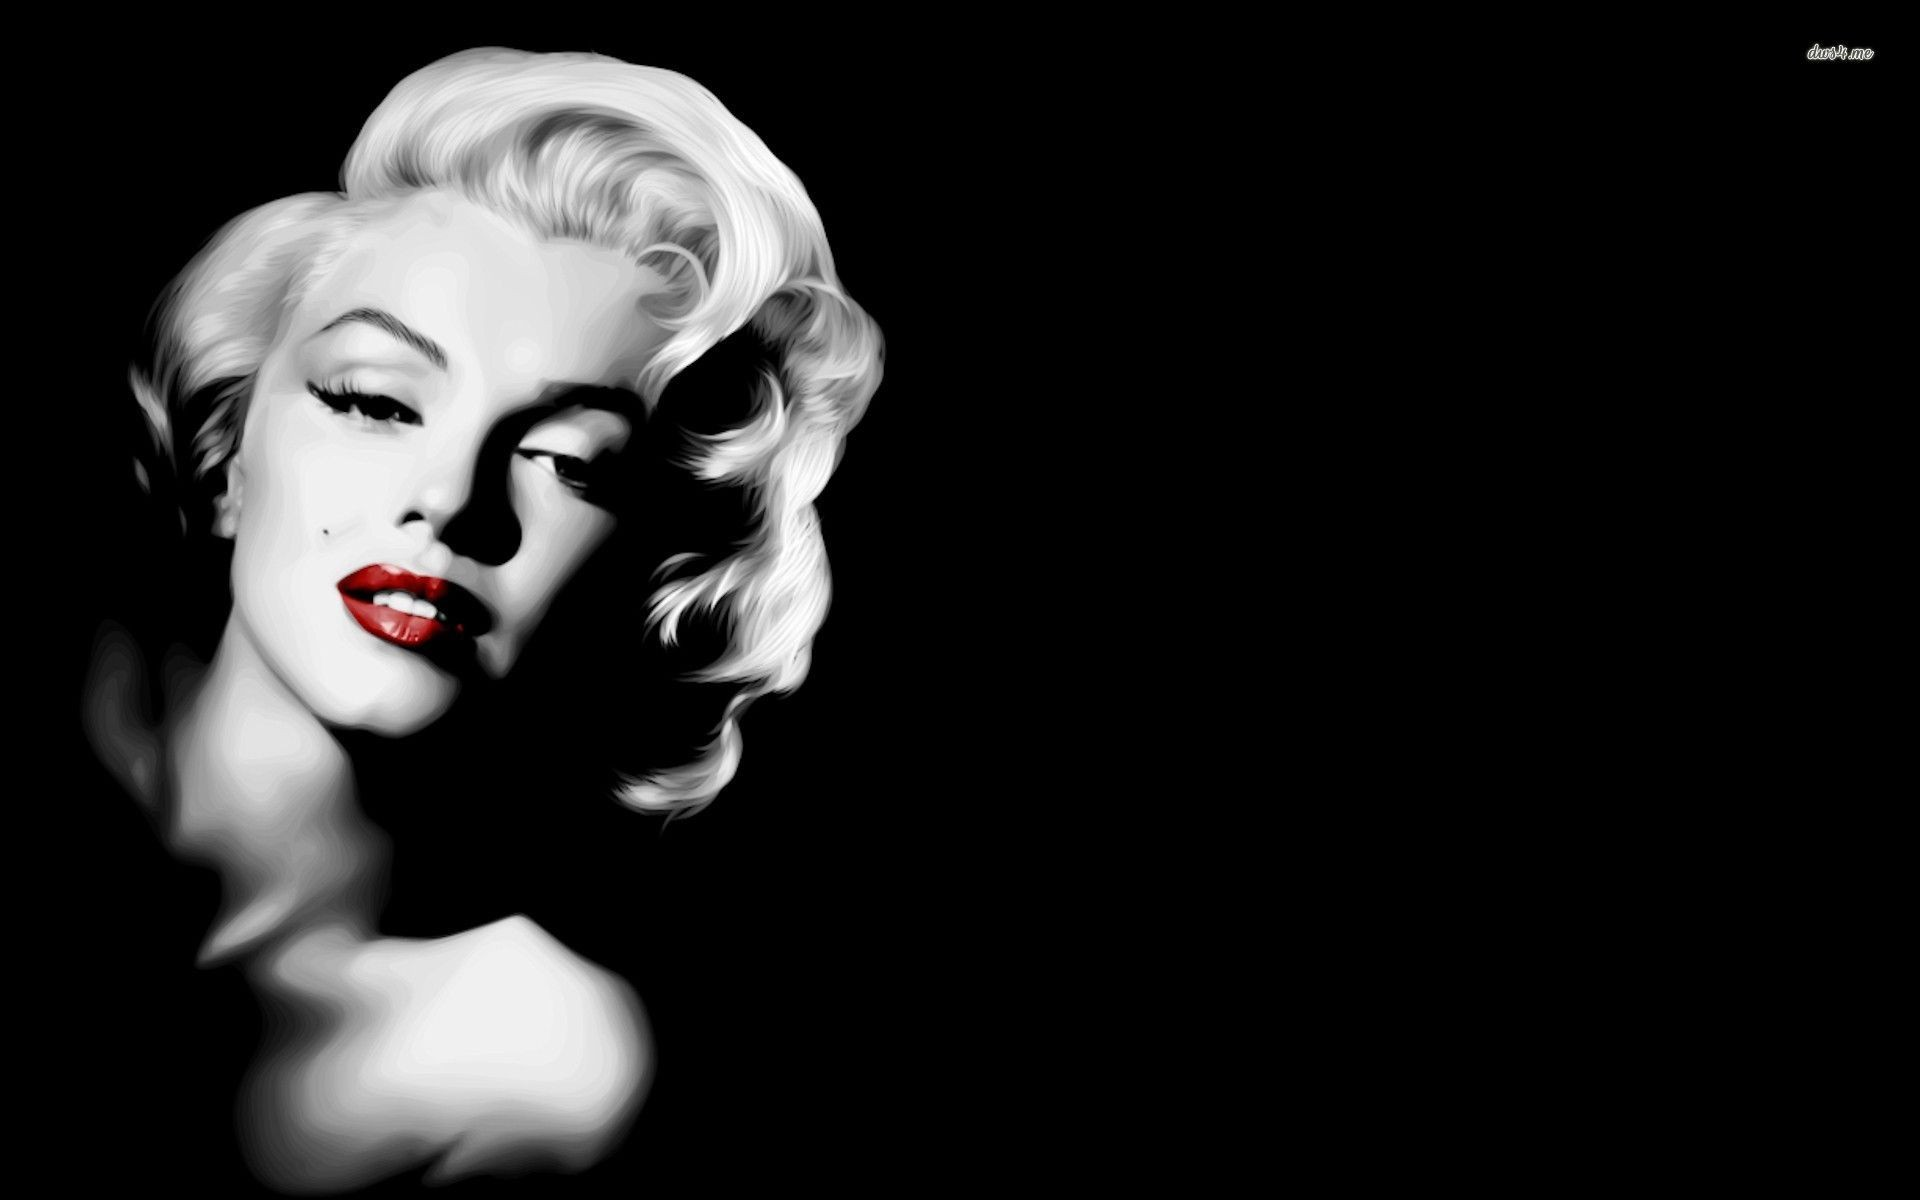 Marilyn Monroe Wallpaper Download Free Amazing Wallpapers Of